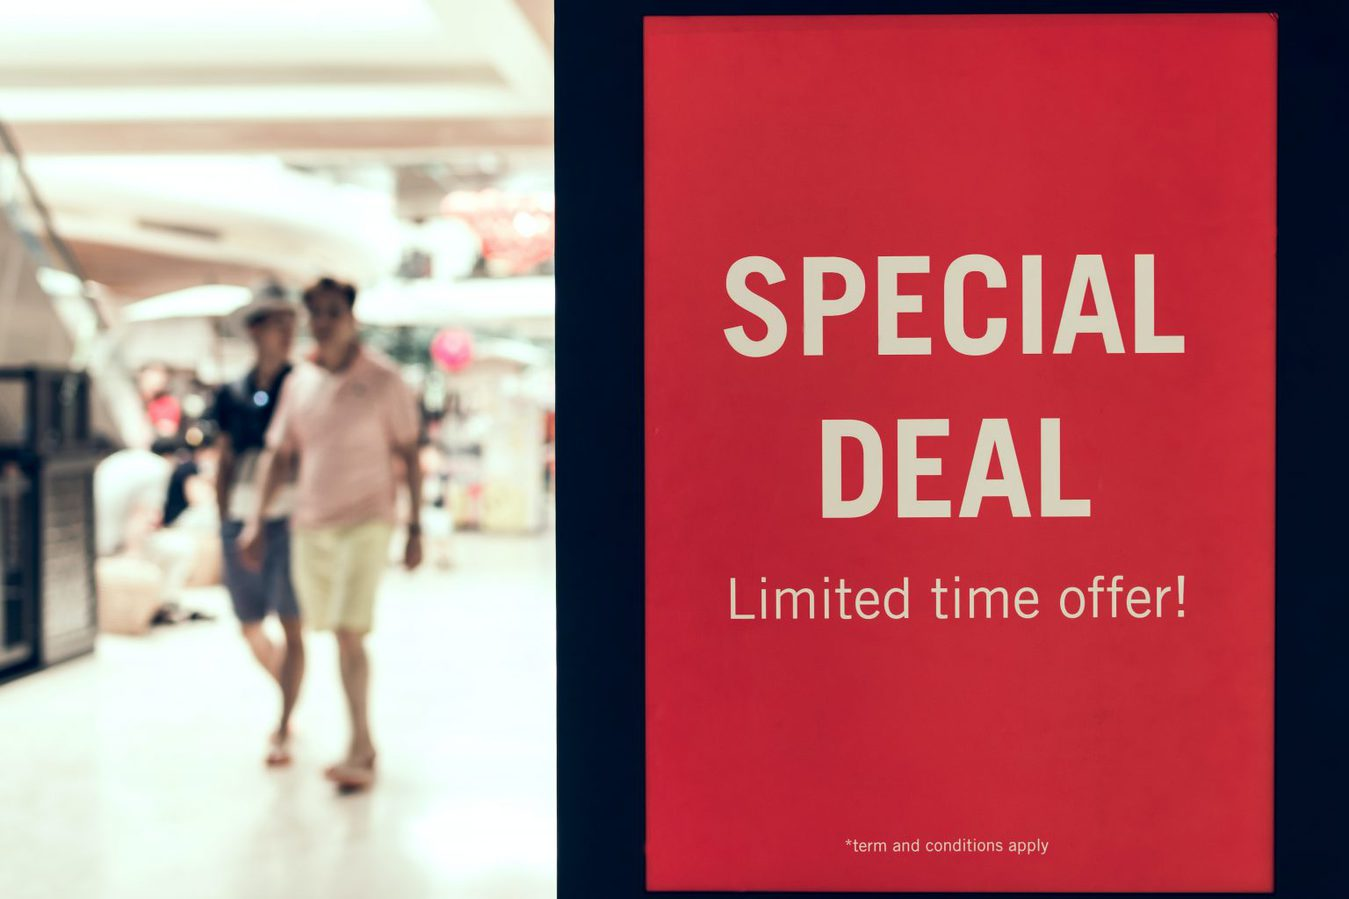 red poster that says 'special deal limited time offer!'